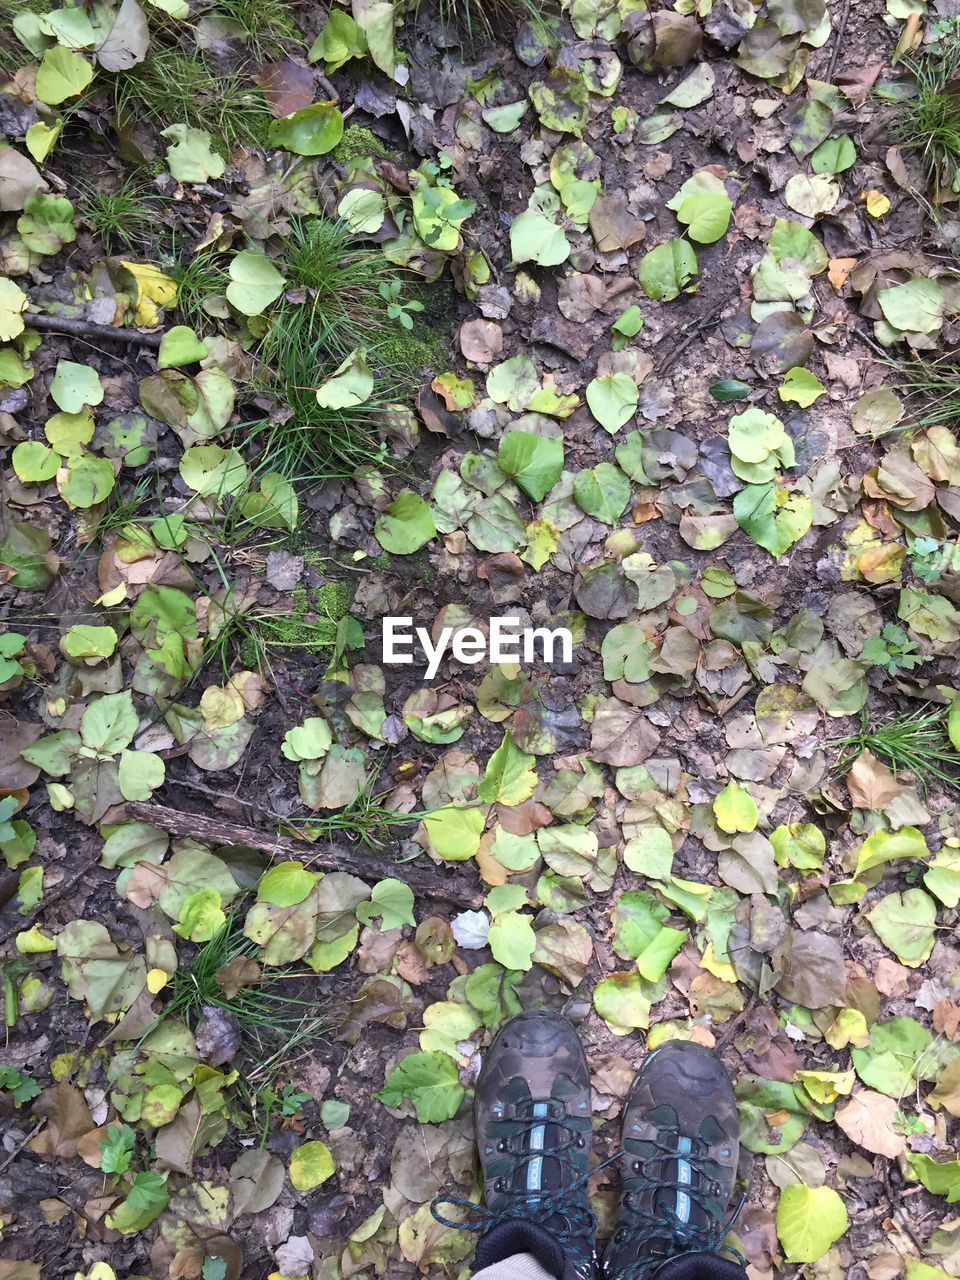 low section, shoe, human leg, body part, human body part, leaf, one person, real people, plant part, standing, personal perspective, lifestyles, high angle view, day, nature, unrecognizable person, directly above, leisure activity, plant, human foot, outdoors, leaves, human limb, change